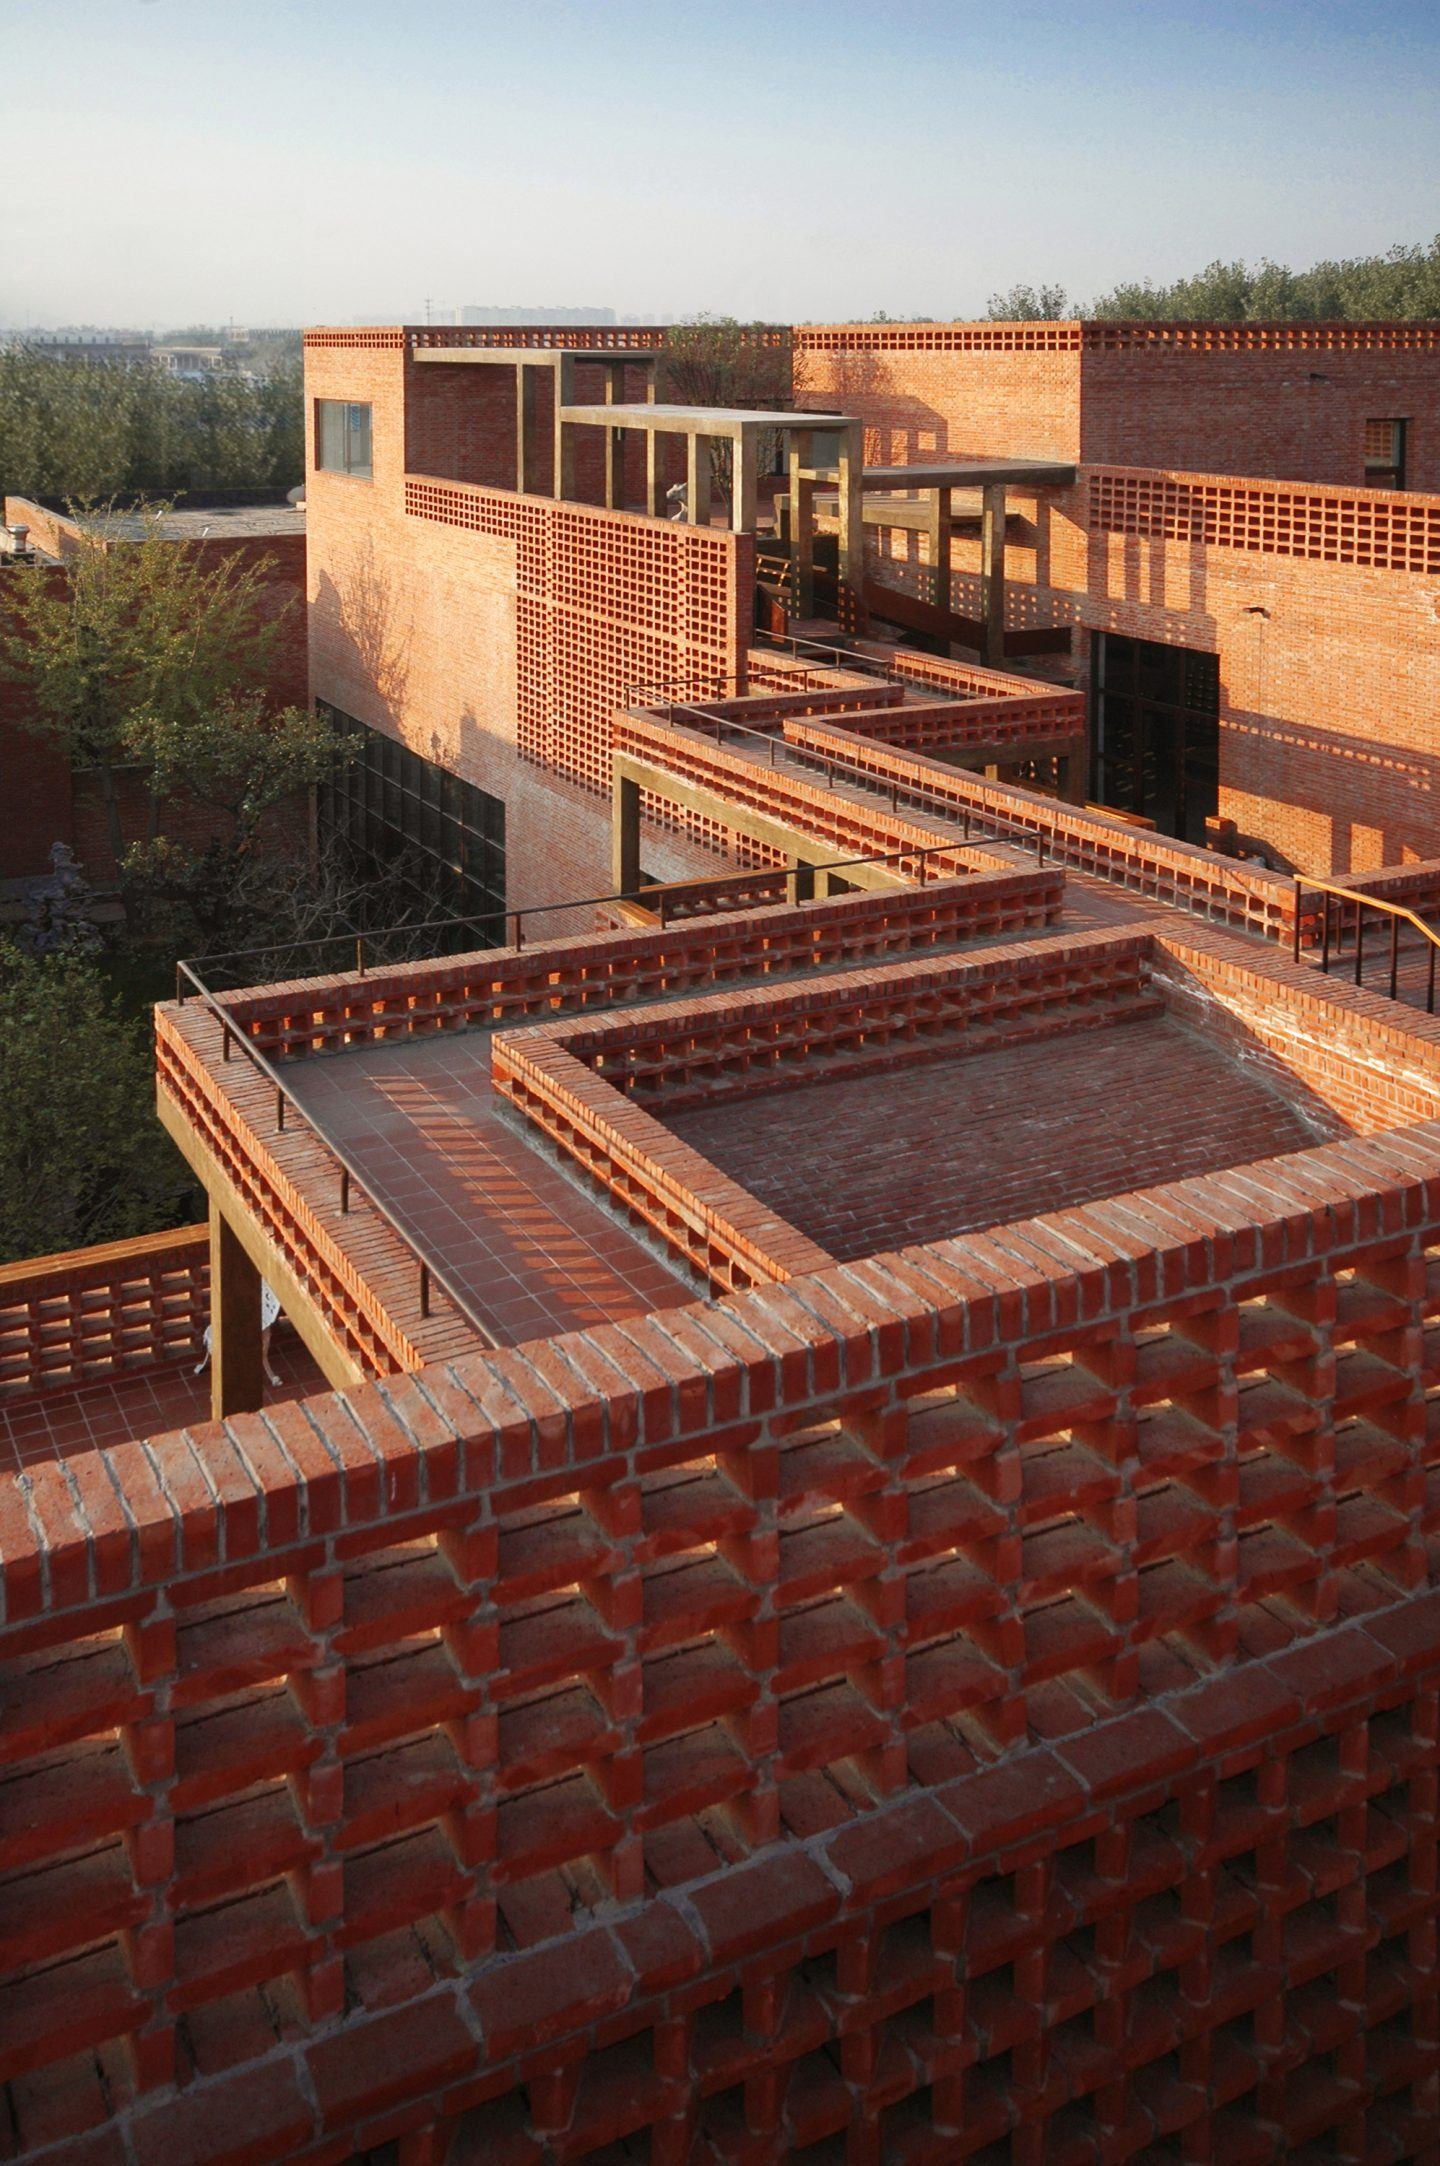 IGNANT-Architecture-Atelier-100s+1-Xiang-Jing-Qu-Guangci-010